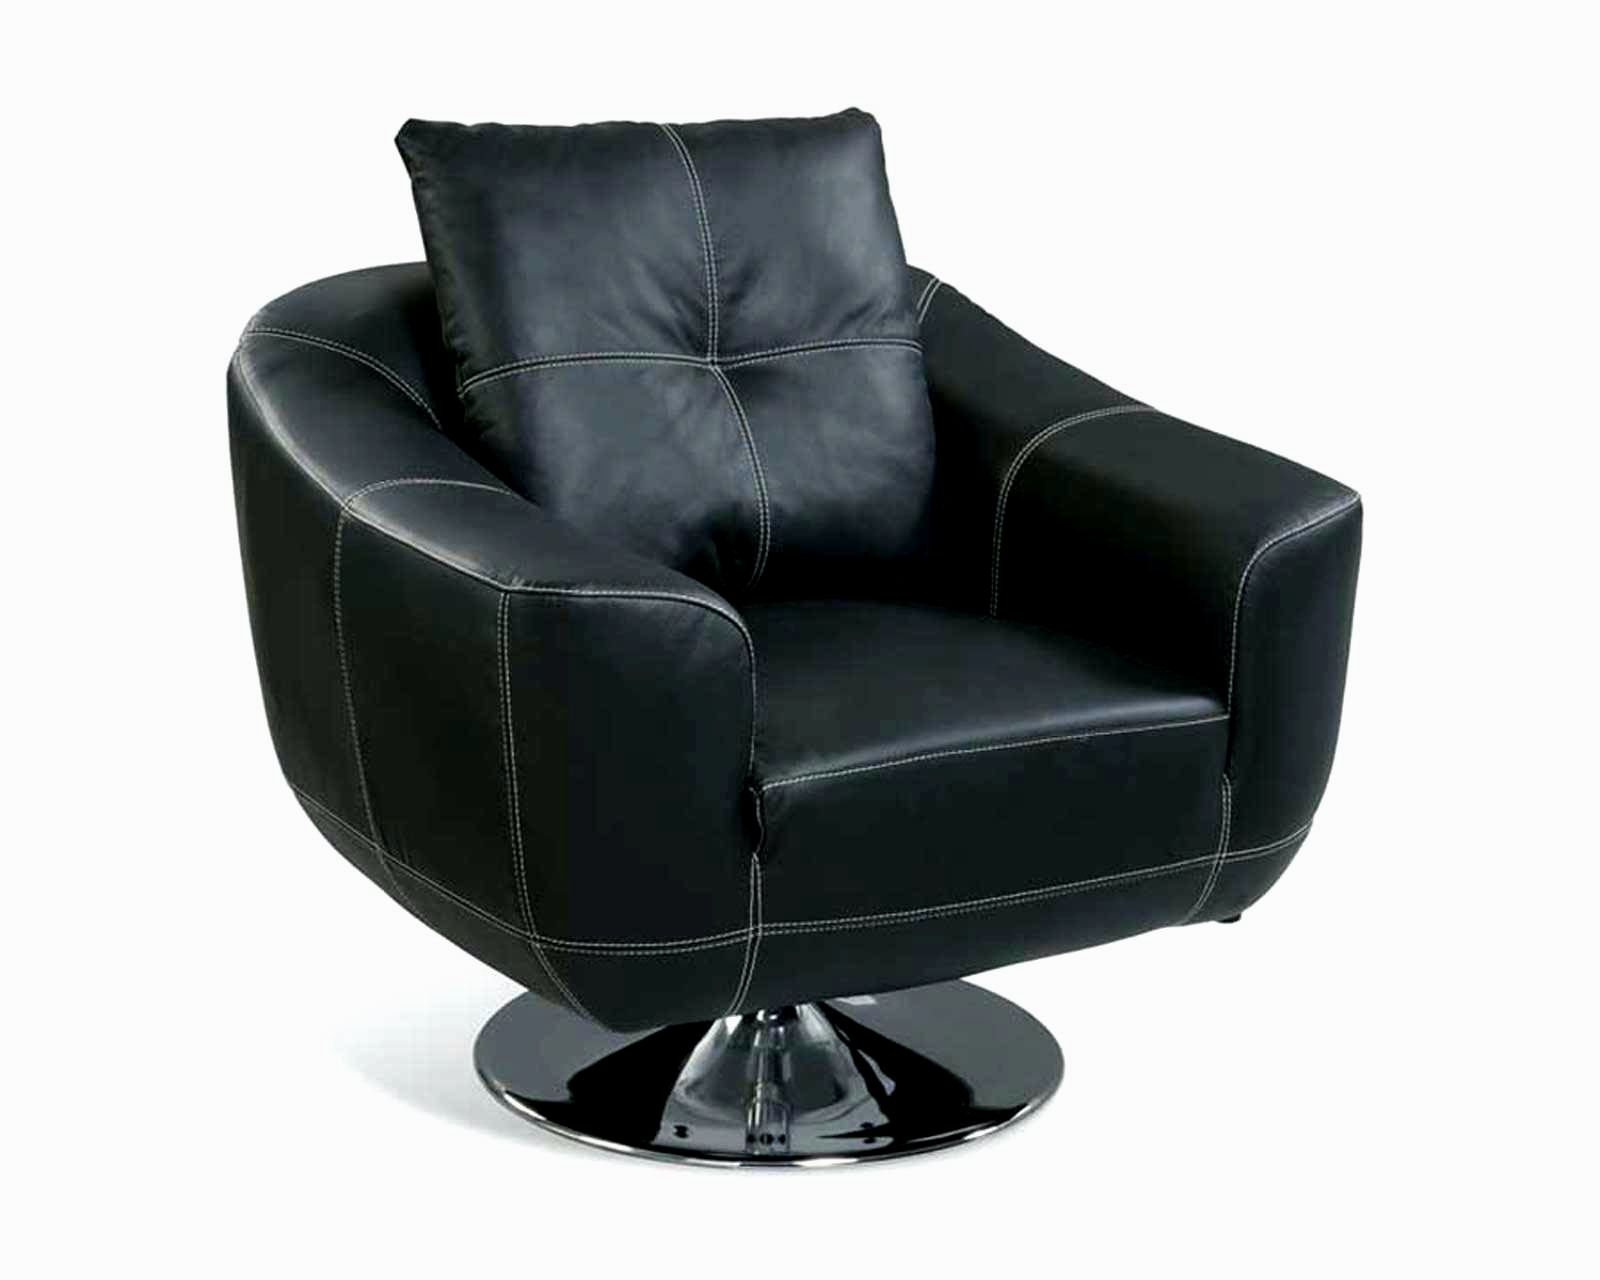 superb black leather sofas picture-Amazing Black Leather sofas Online